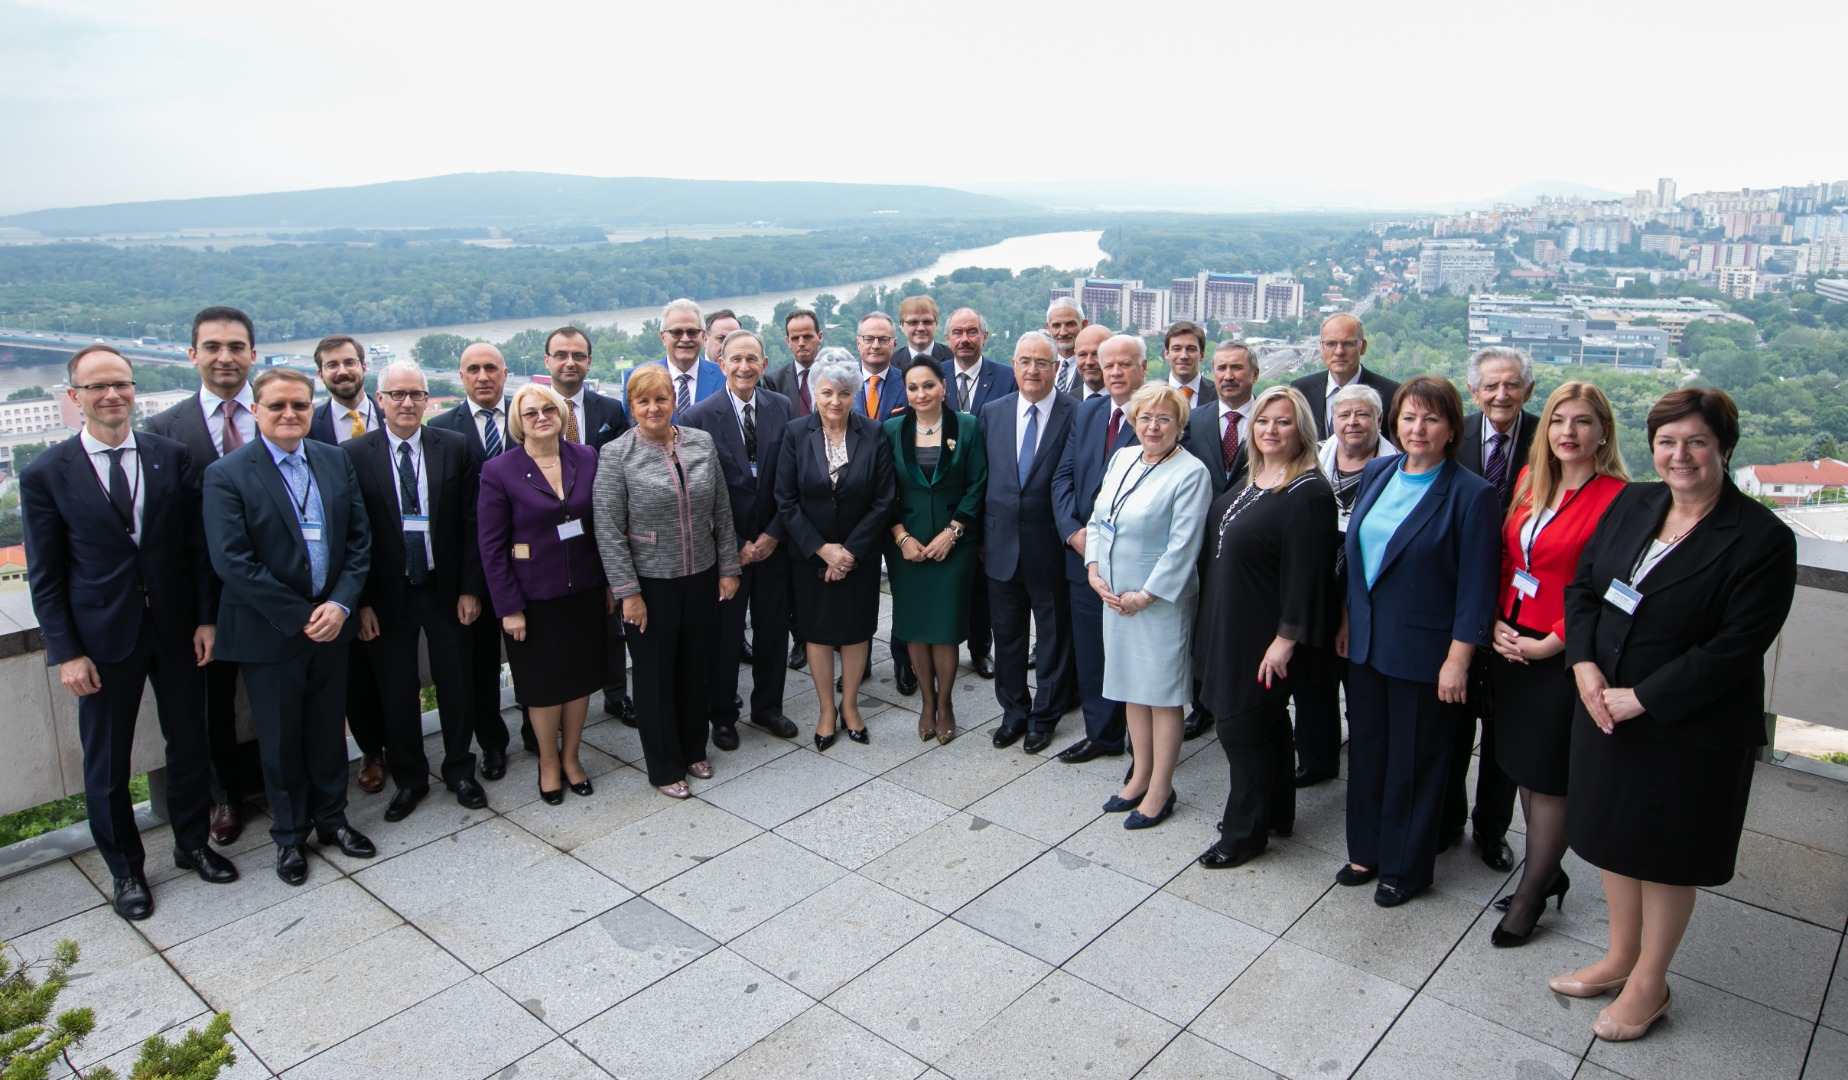 Chief Justices from Central and Eastern Europe in Bratislava, 2019